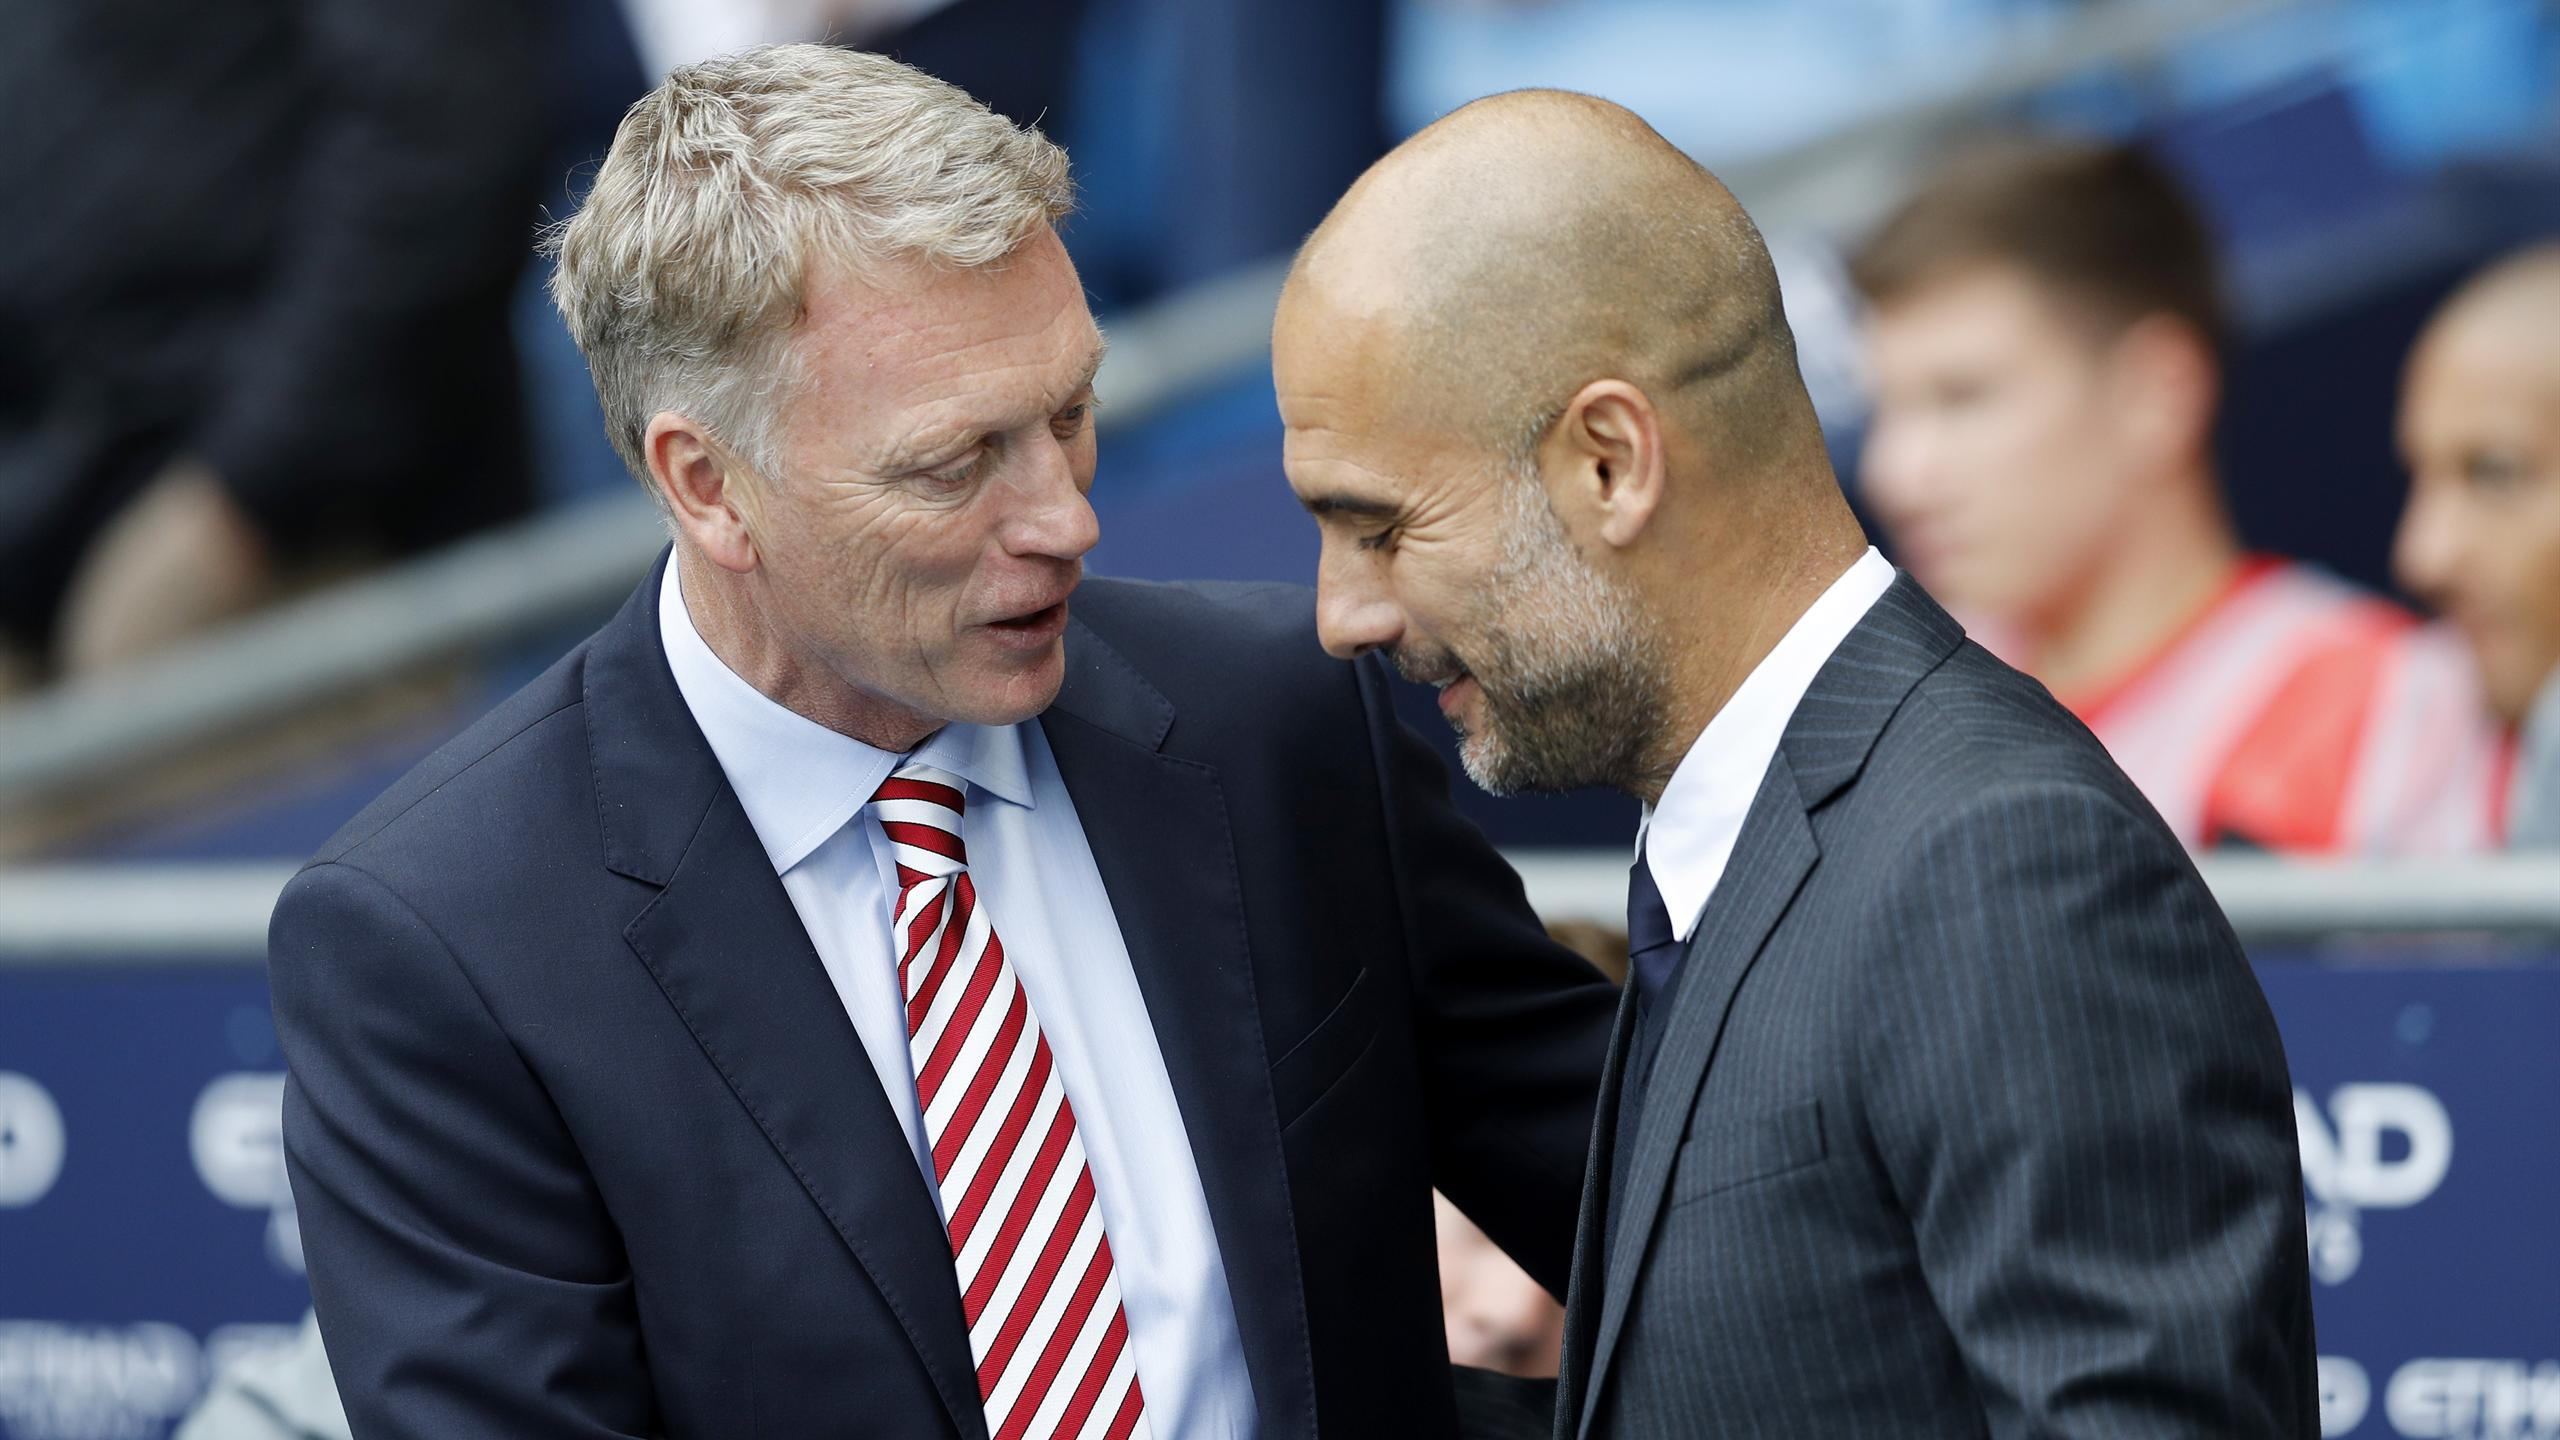 Sunderland manager David Moyes and Manchester City manager Pep Guardiola shakes hands before the game